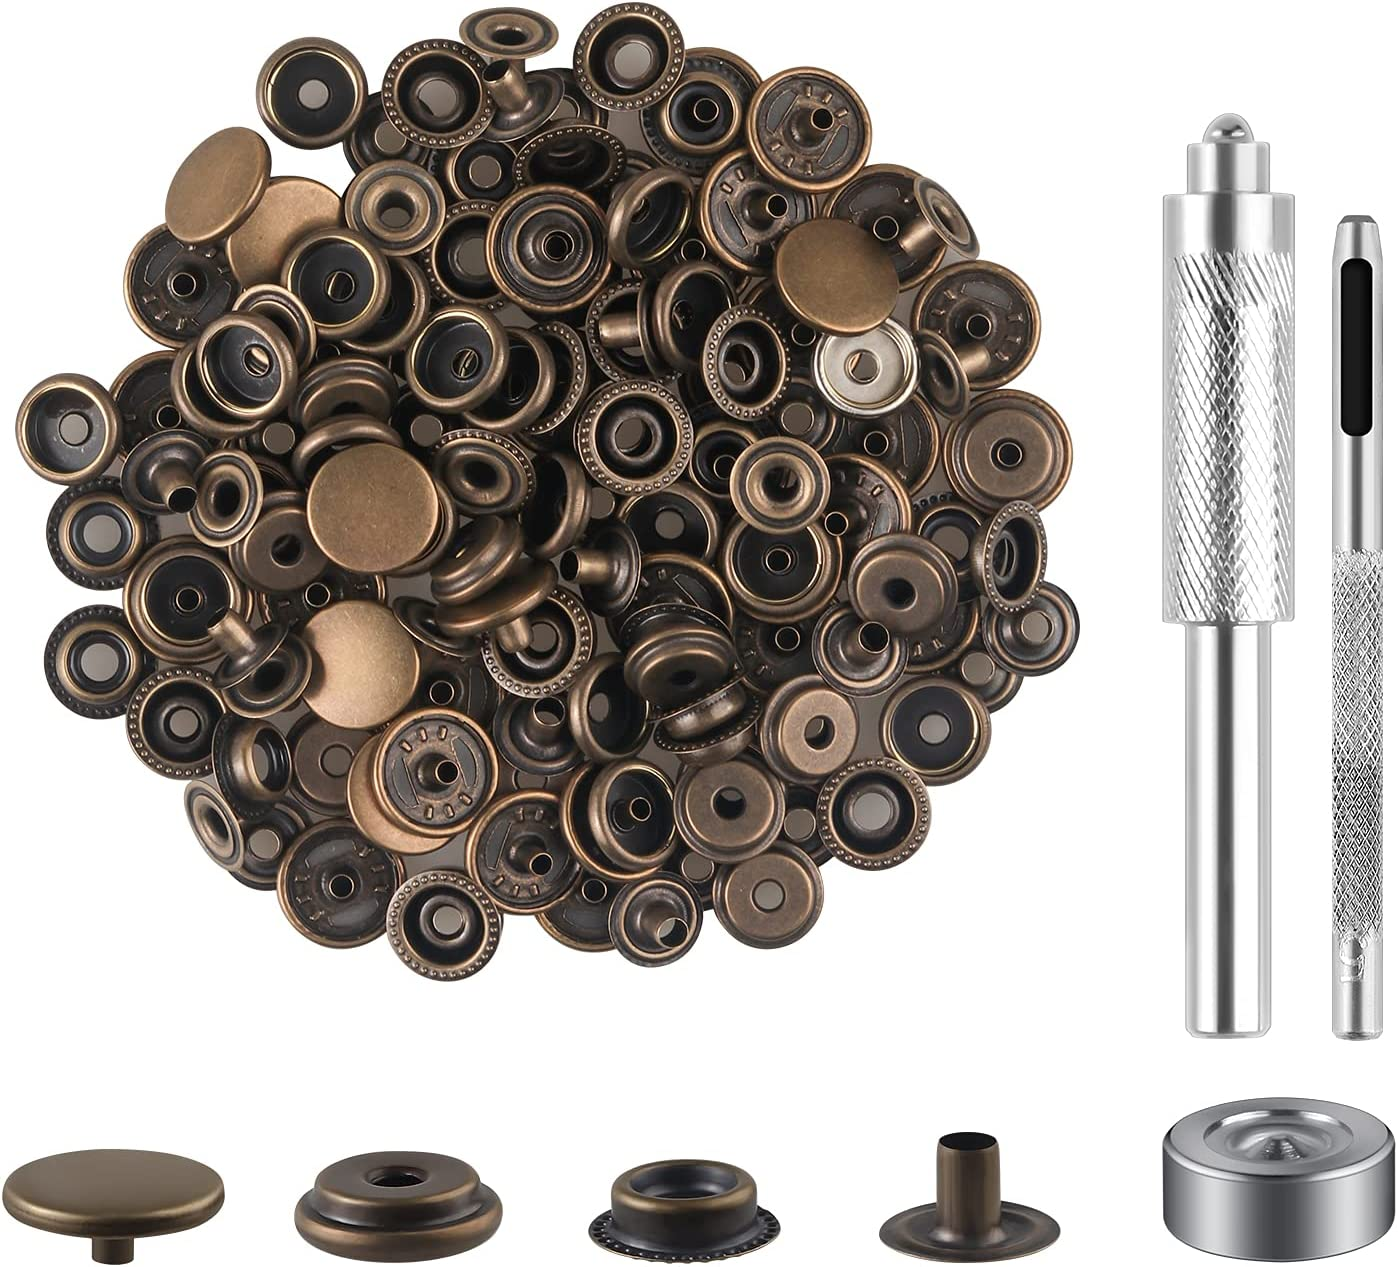 40 Pieces Tucson Mall New popularity 10 Sets Snap Fastener Kit 15mm Sna 8 inches 5 Tool